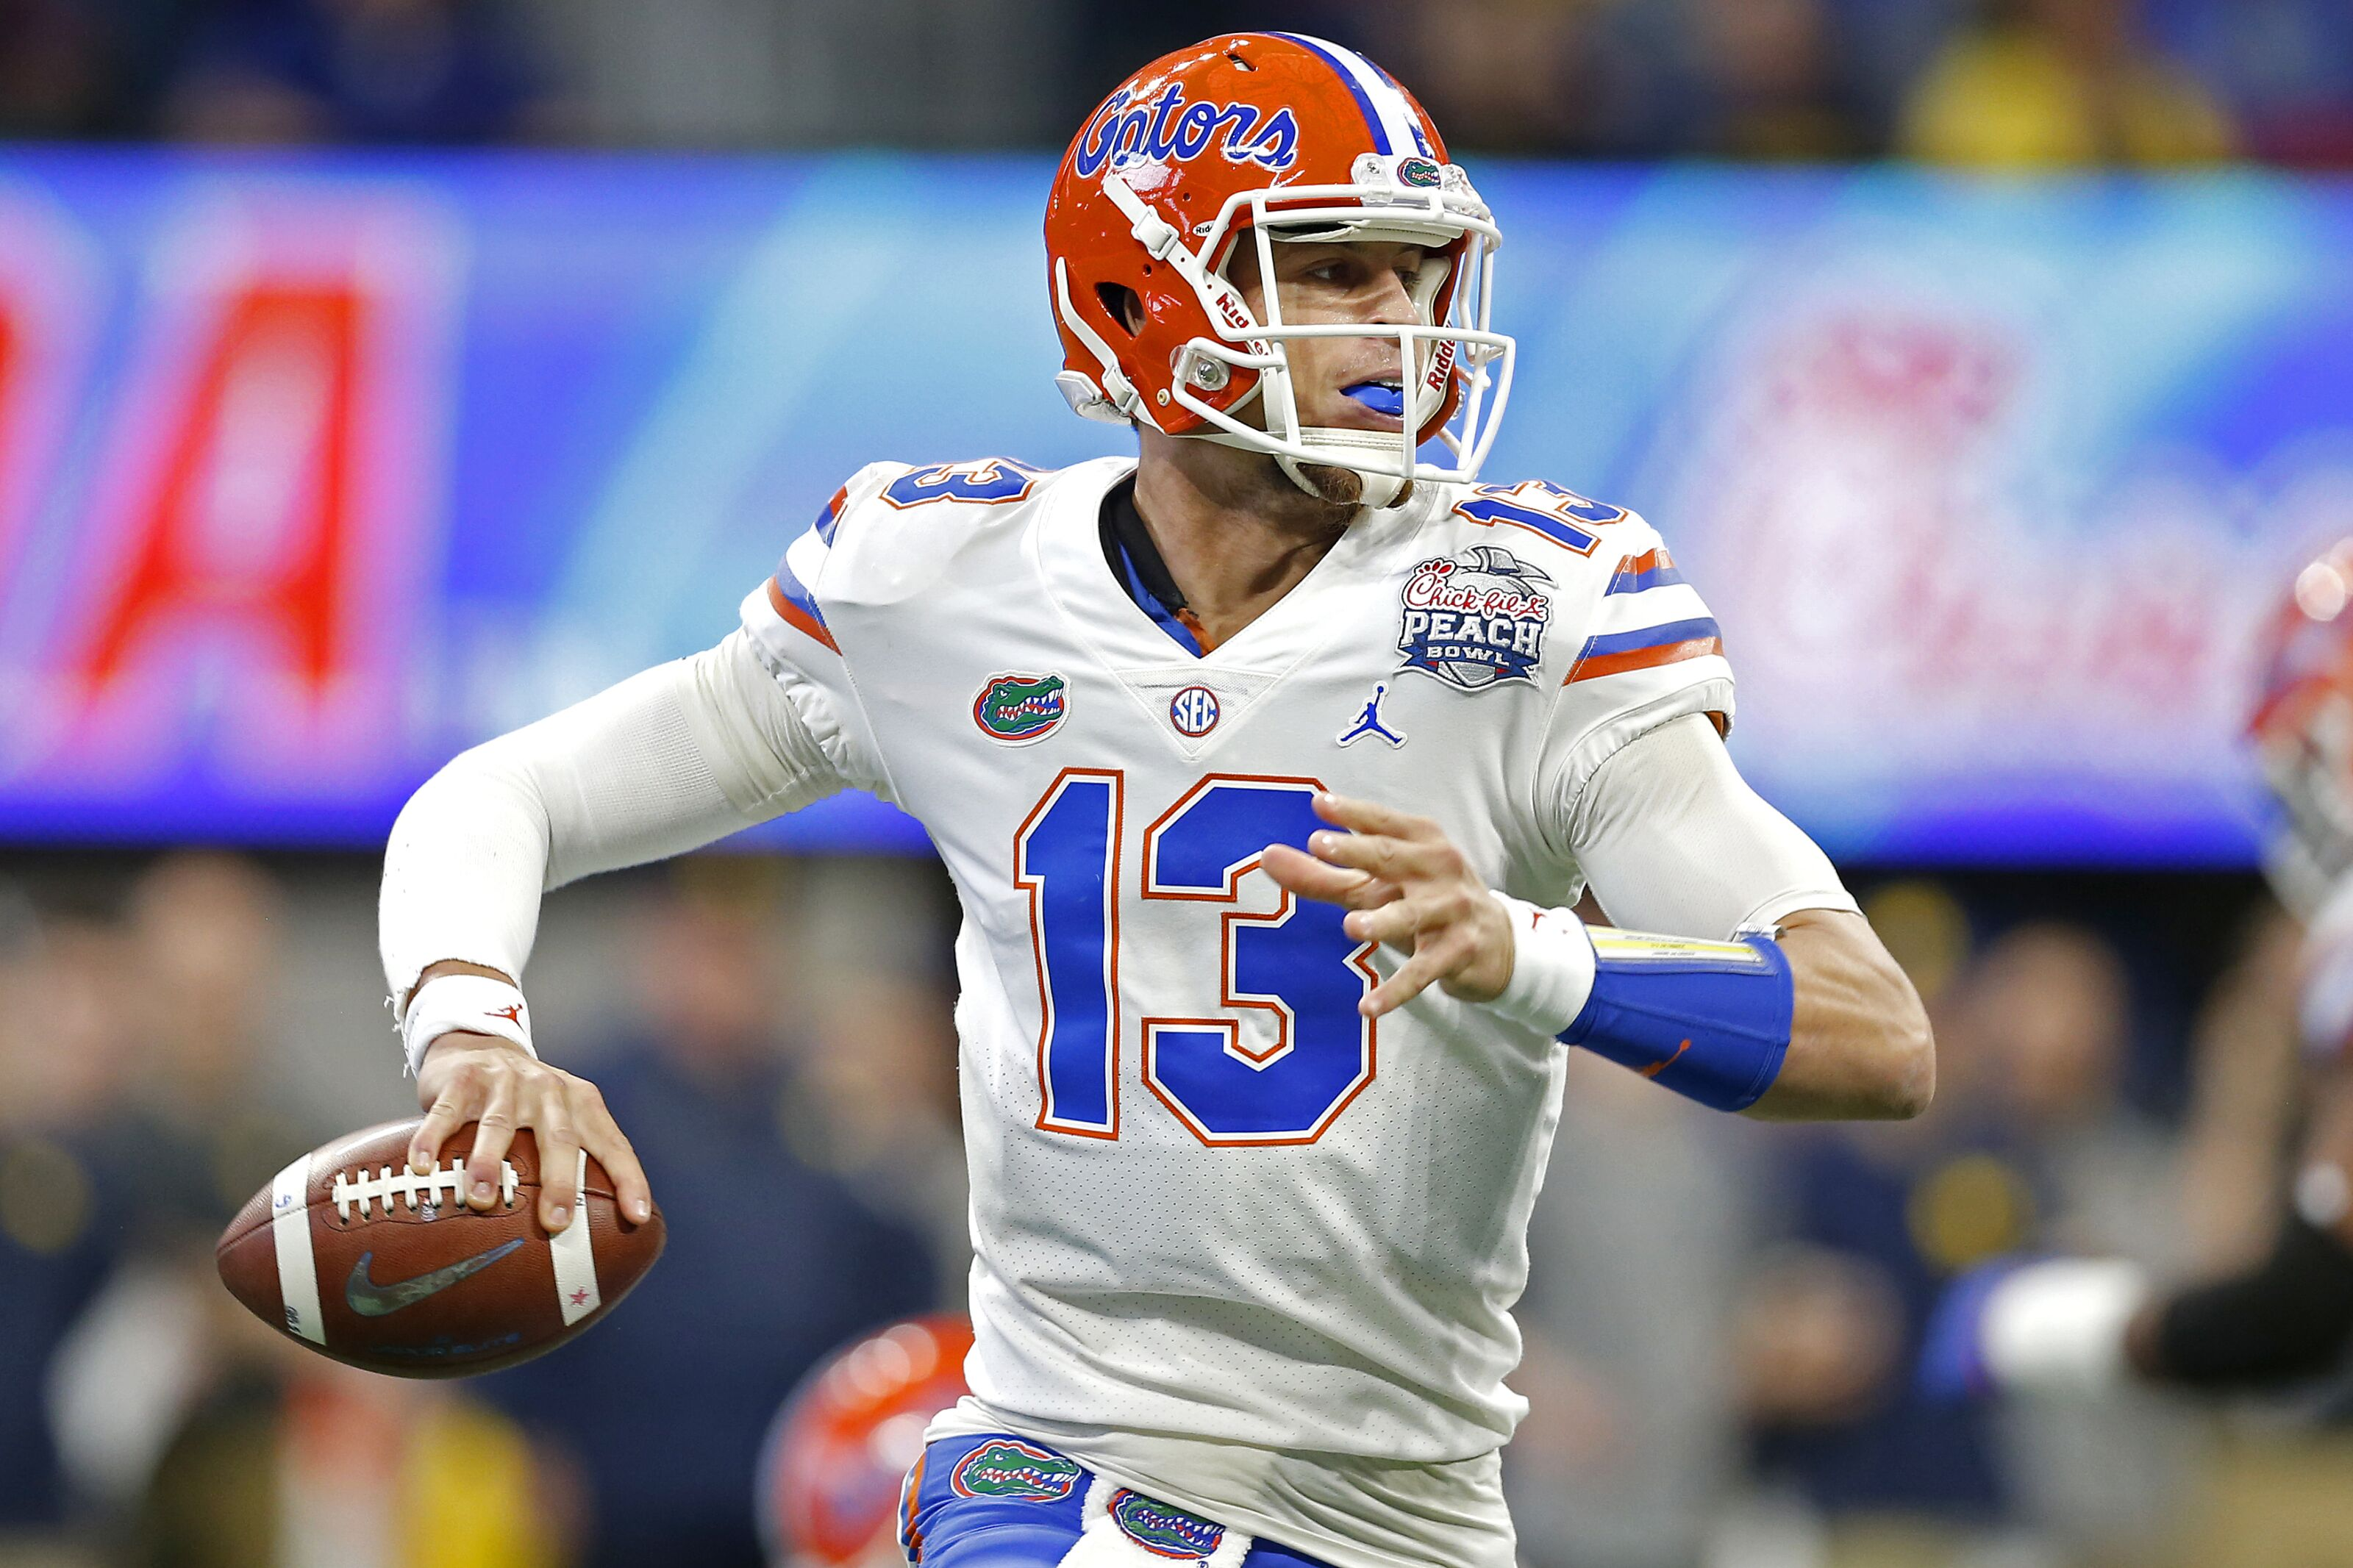 Kansas football: Transfer QB Feleipe Franks is in Lawrence